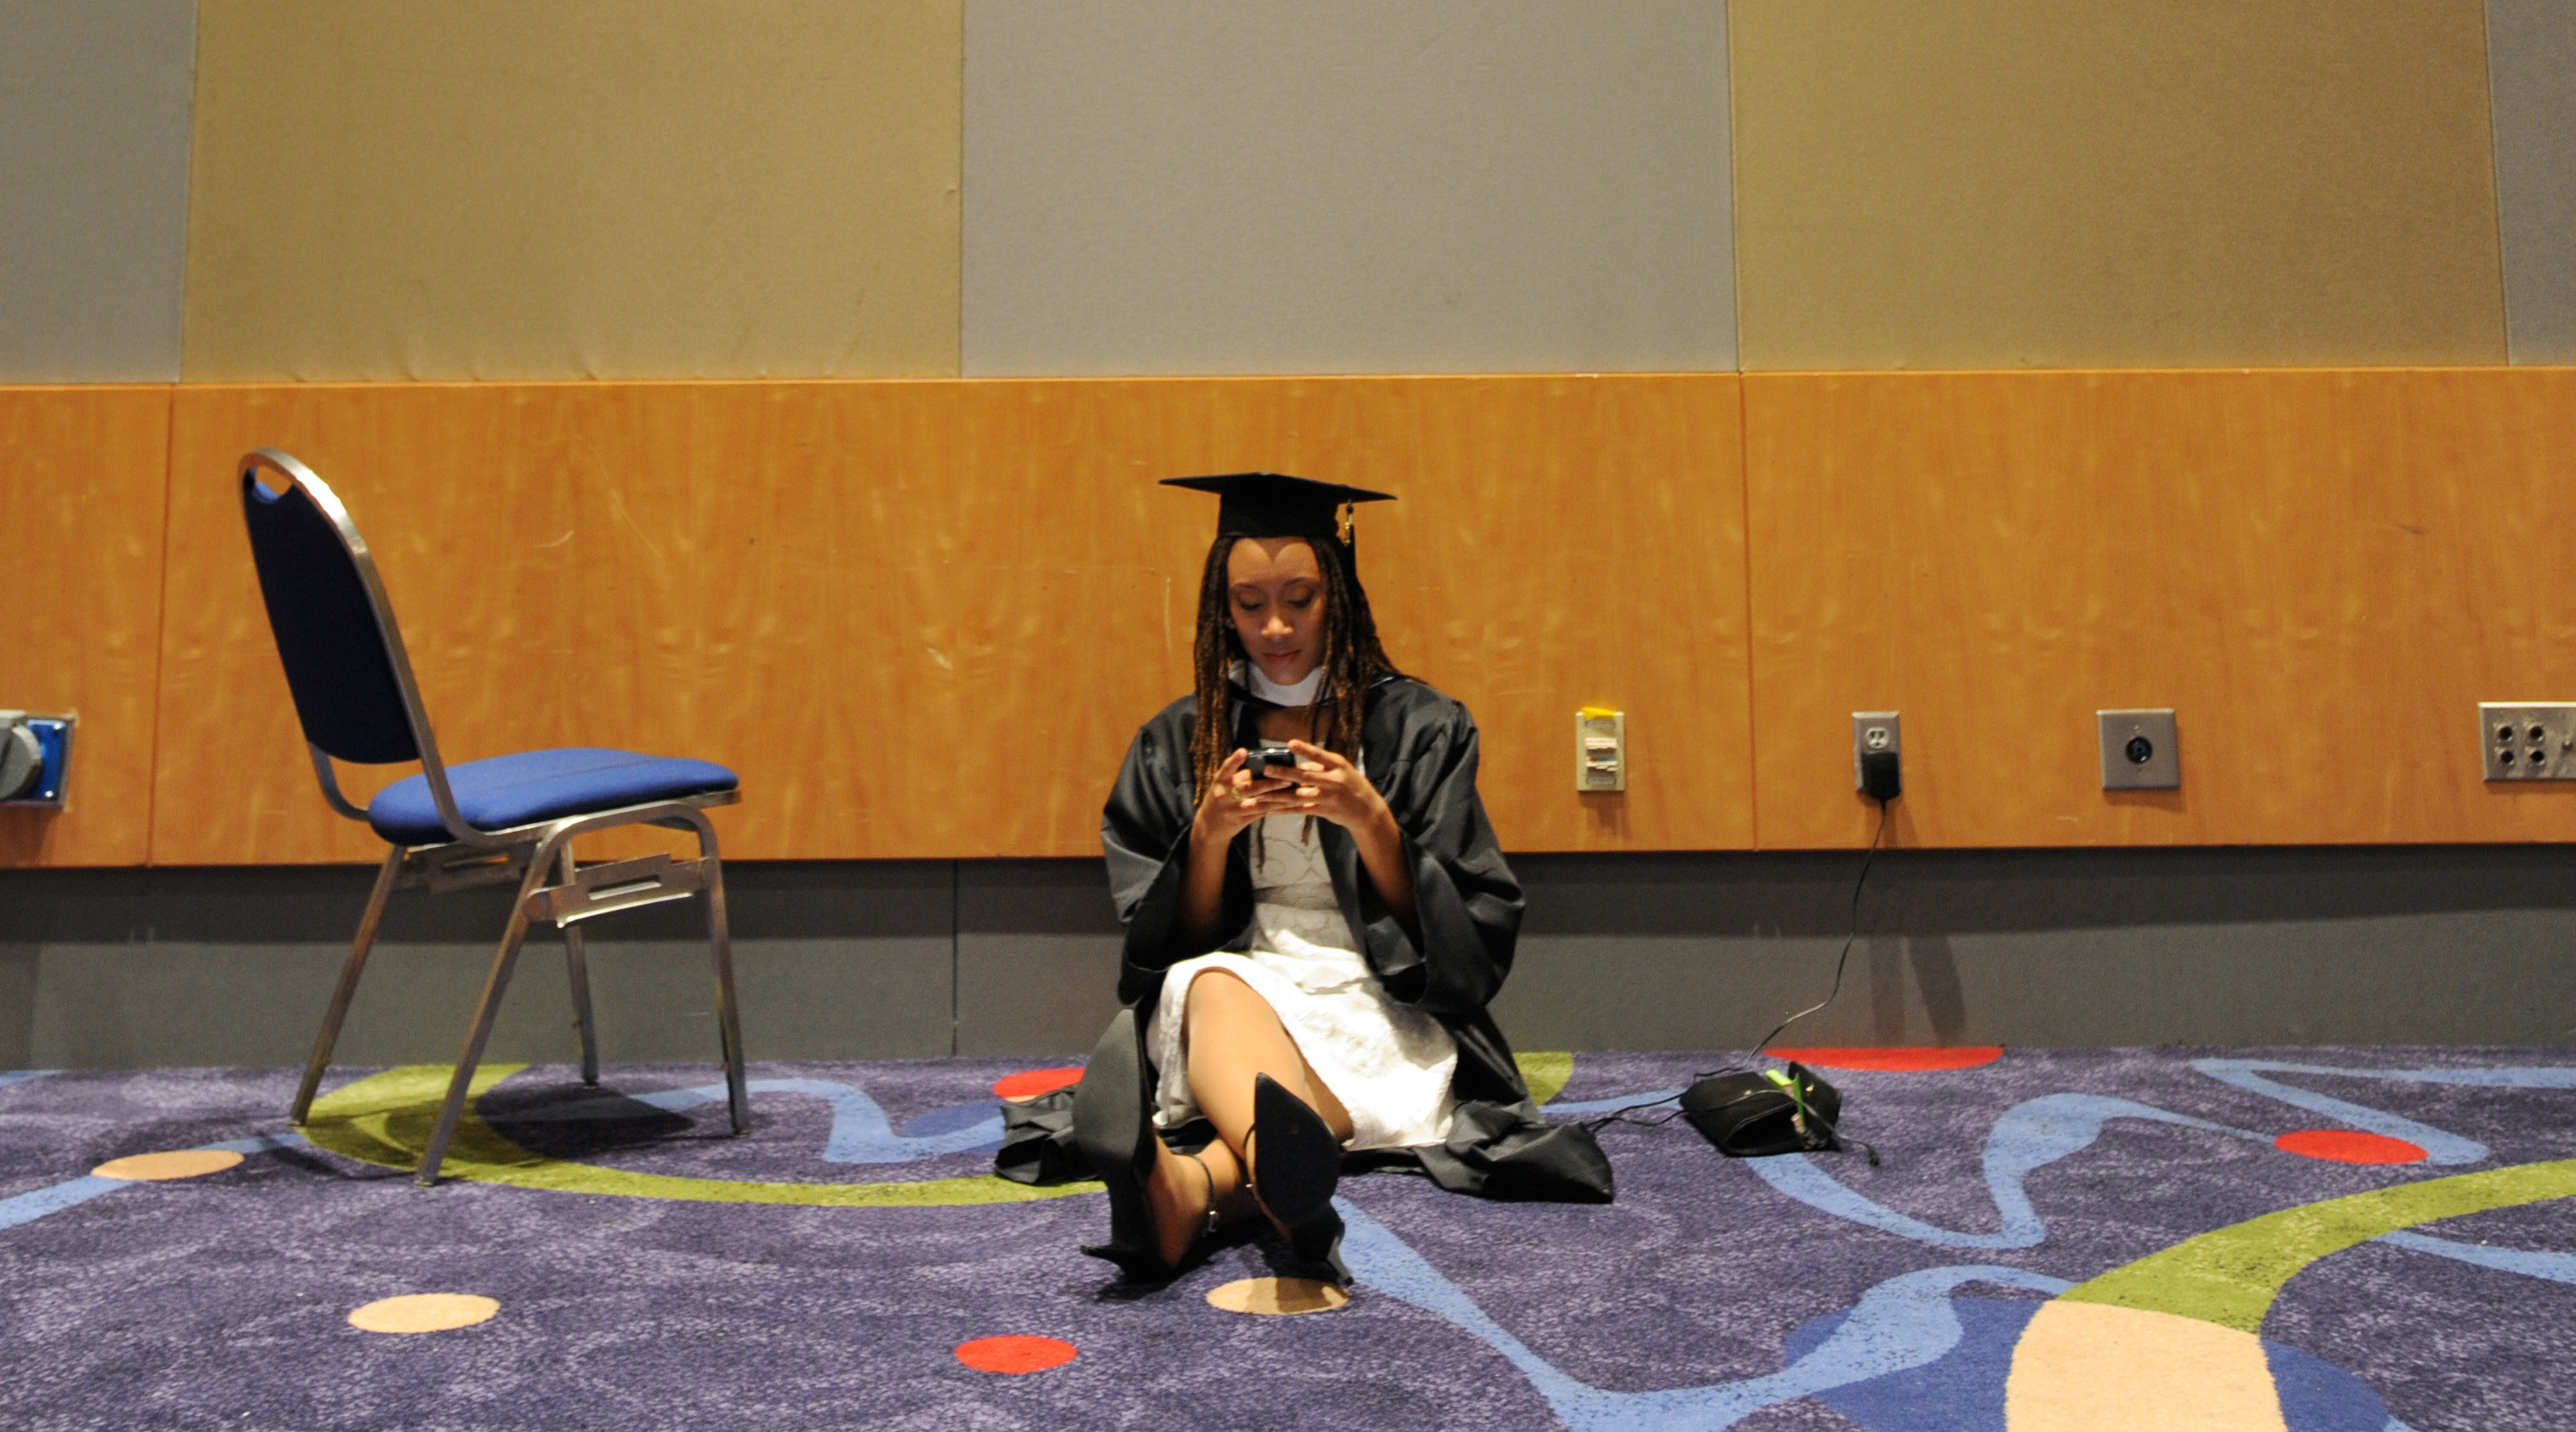 Spelman College graduating senior Vivian Aguayo, 20, of Silver Spring, Md., uses her mobile phone while waiting to participate in her commencement ceremony on Sunday, May 15, 2011, at the Georgia International Convention Center in College Park, Ga. First lady Michelle Obama is scheduled to deliver the commencement address to the graduates of Spelman College, and attendees had to arrive several hours early for security sweeps.